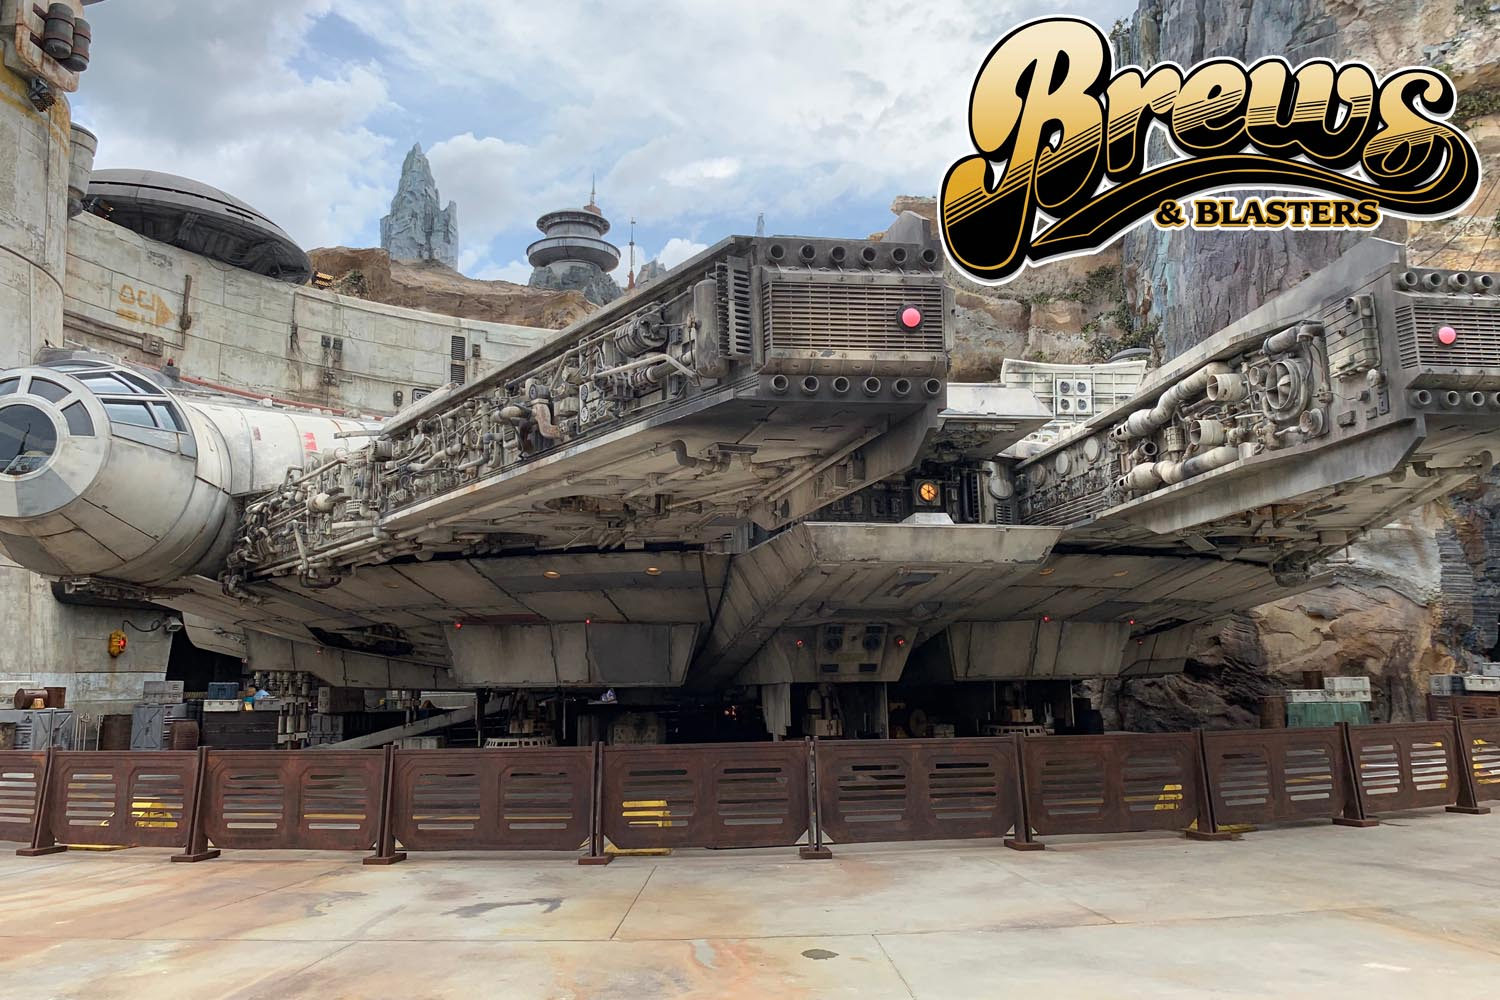 We're drinking hard Italian sodas and recounting trips to Galaxy's Edge before the park even opens to the public, gearing up for Fan Expo Boston, and digging into Star Wars Resistance season 2. Bravazzi! Bravazzi! Chris went to Galaxy's Edge before it's open to the public, and Joe went to an Italian sub shop and read A Crash of Fate. Then, the guys are going to Fan Expo Boston and they're ready to hand out Oppo Awards, but are you ready to receive them? All that, plus Star Wars Resistance season 2, NeedEm GotEm, your voicemails and much, much more. This one's a mammajamma, folks, so enjoy it to the fullest. Bravazzi! The Star Wars Party stats NOW! It's time for Brews and Blasters.